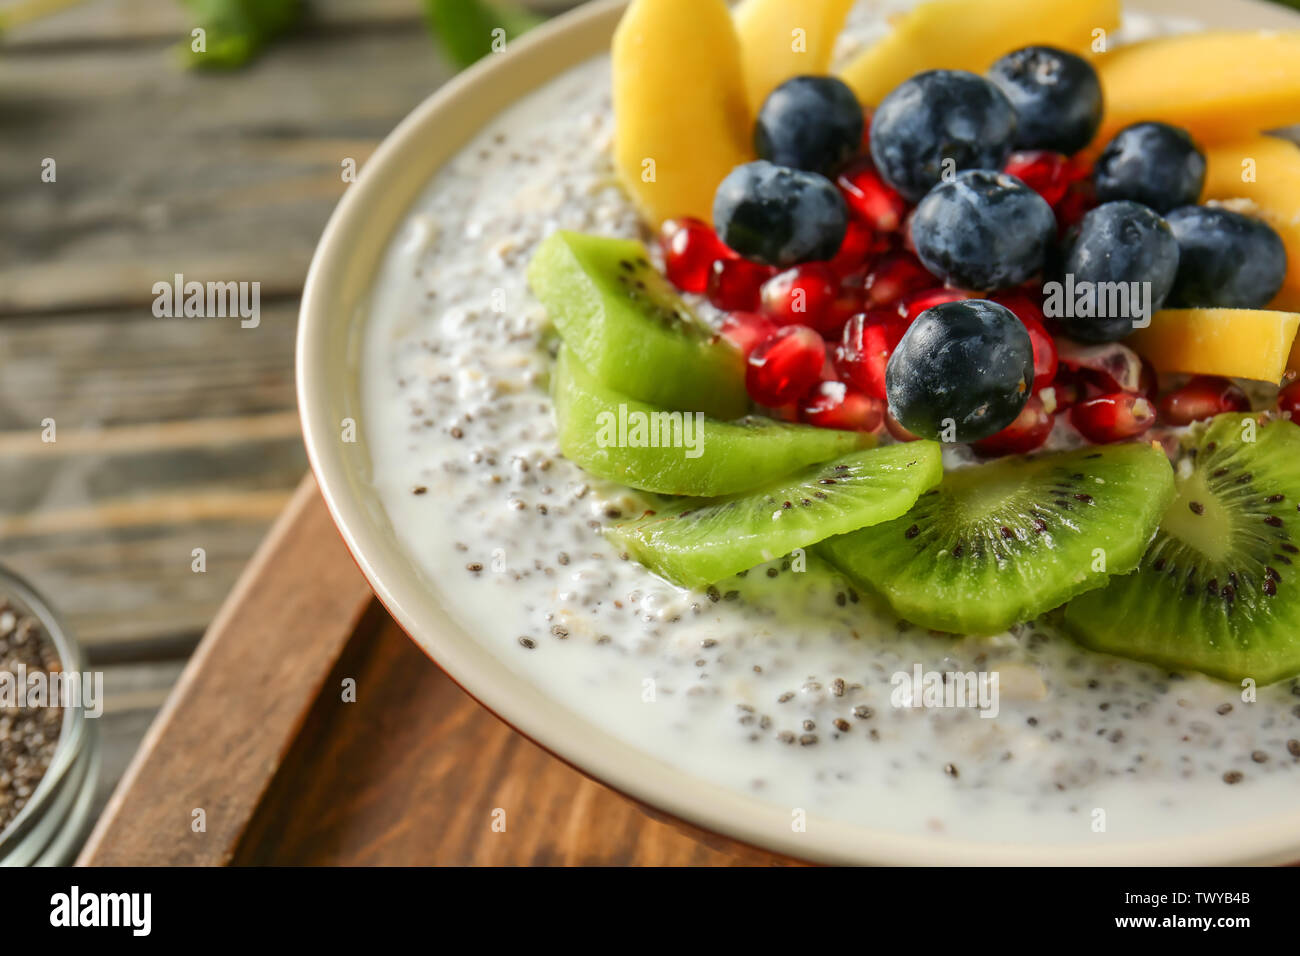 Bowl with tasty chia dessert on table, closeup - Stock Image